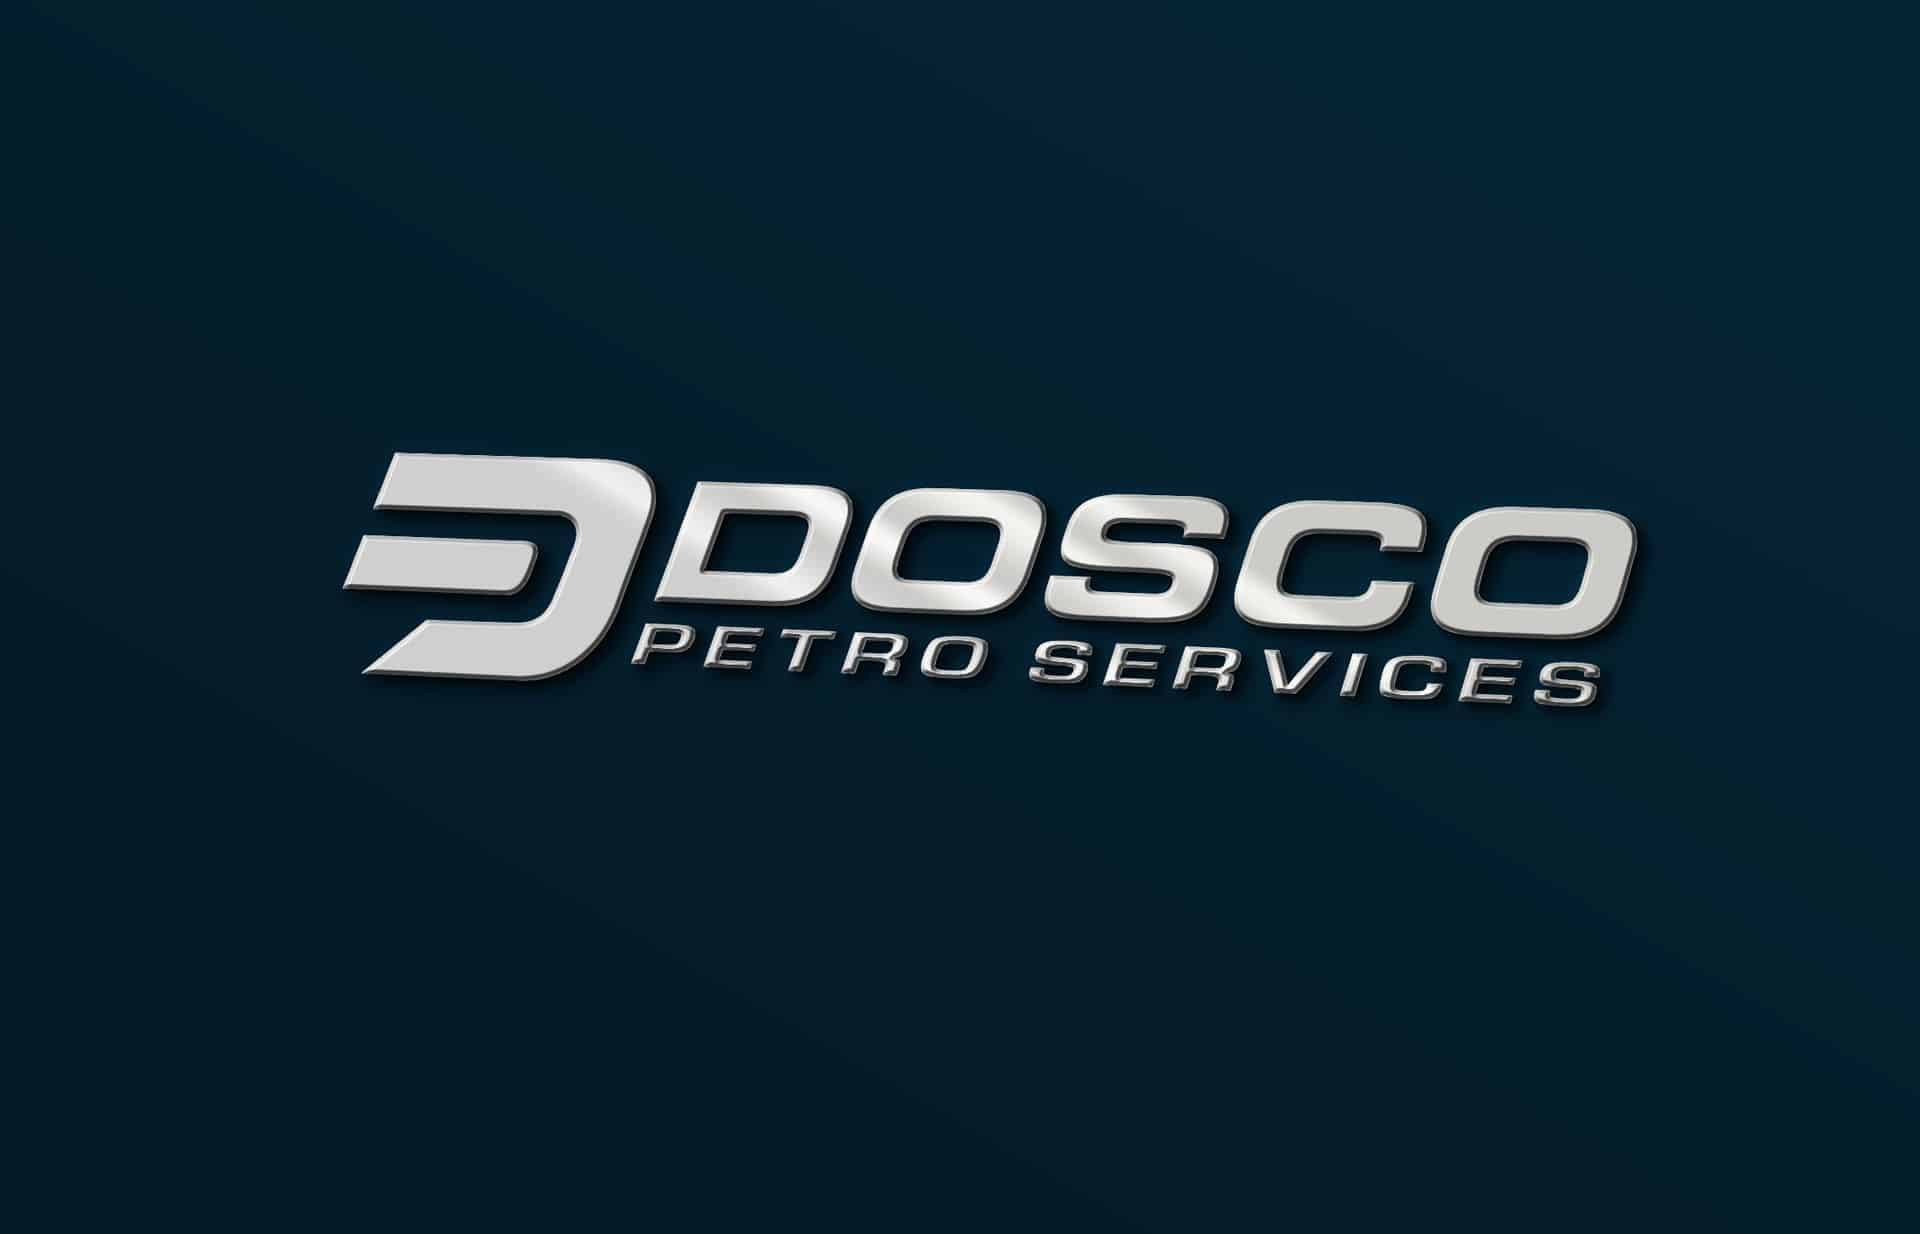 Dosco launches new website